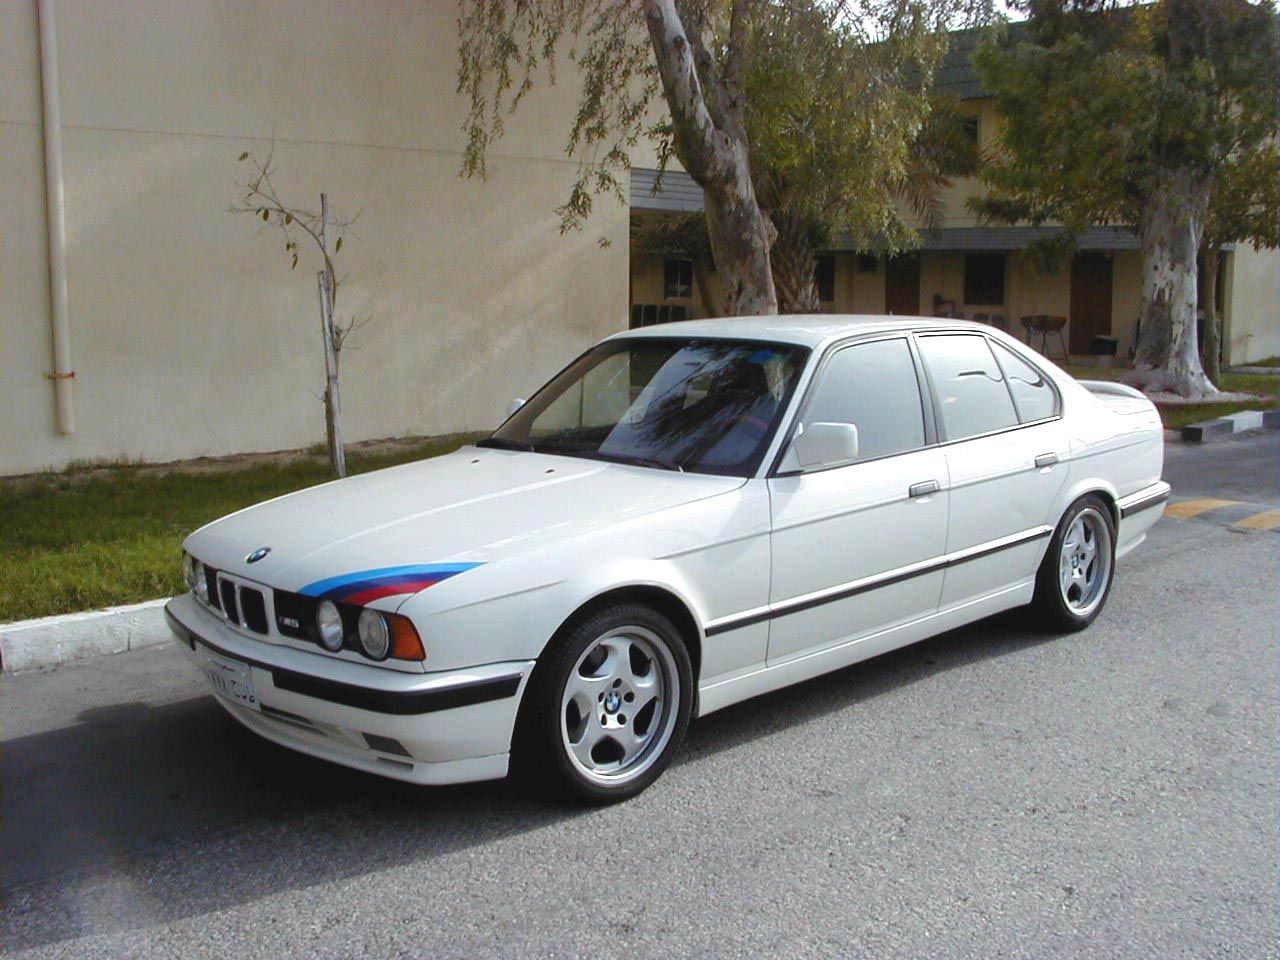 1992 E34 M5 Lightweight Page 8 Bmw M5 Forum And M6 Forums